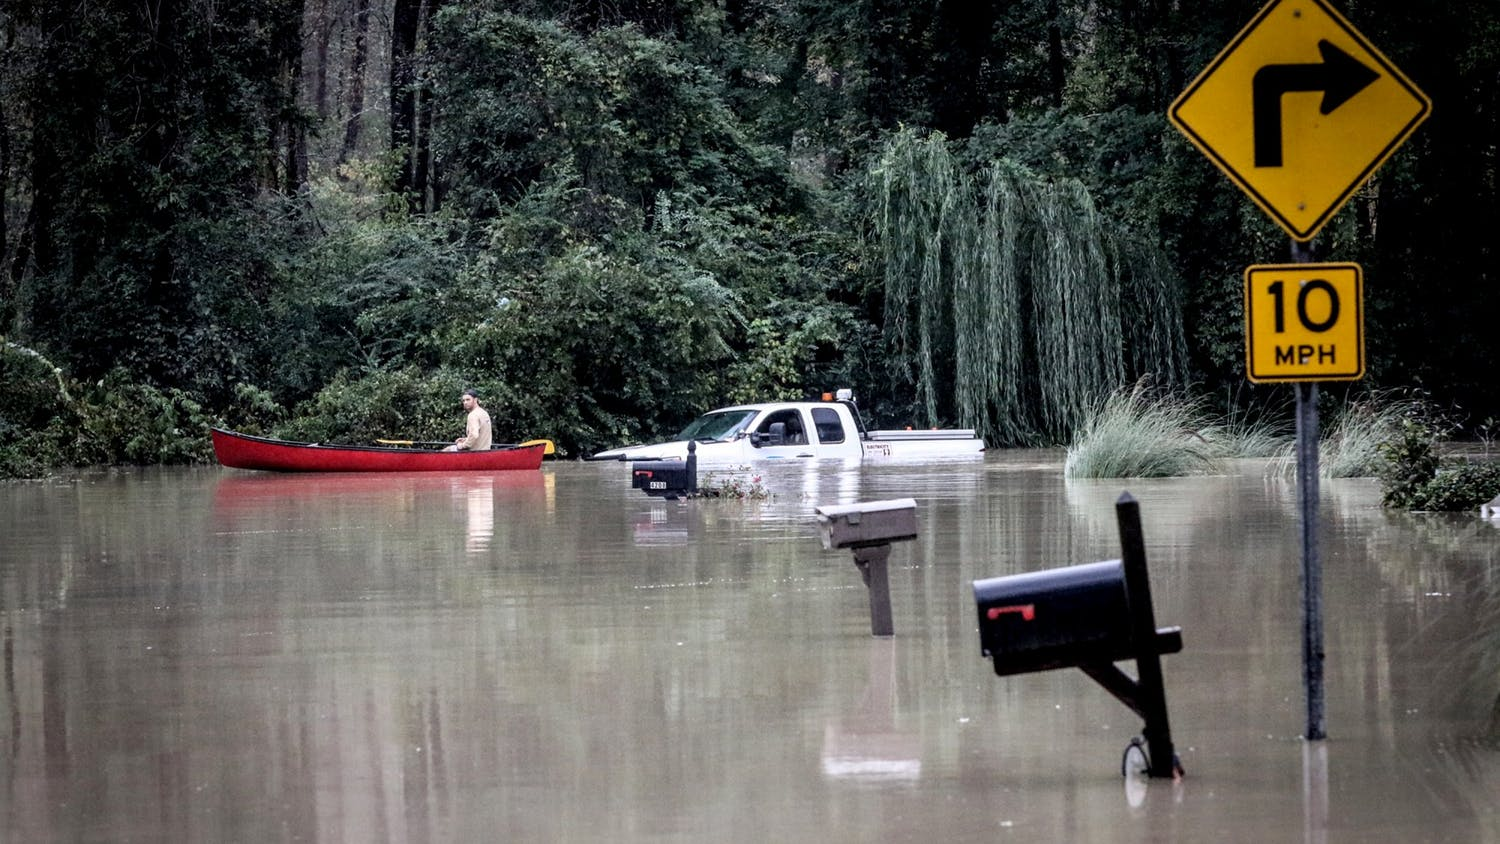 Rescue crews from across the country work to help those in need after rain and flood water ravaged the Columbia, South Carolina, area on Oct. 4, 2015.